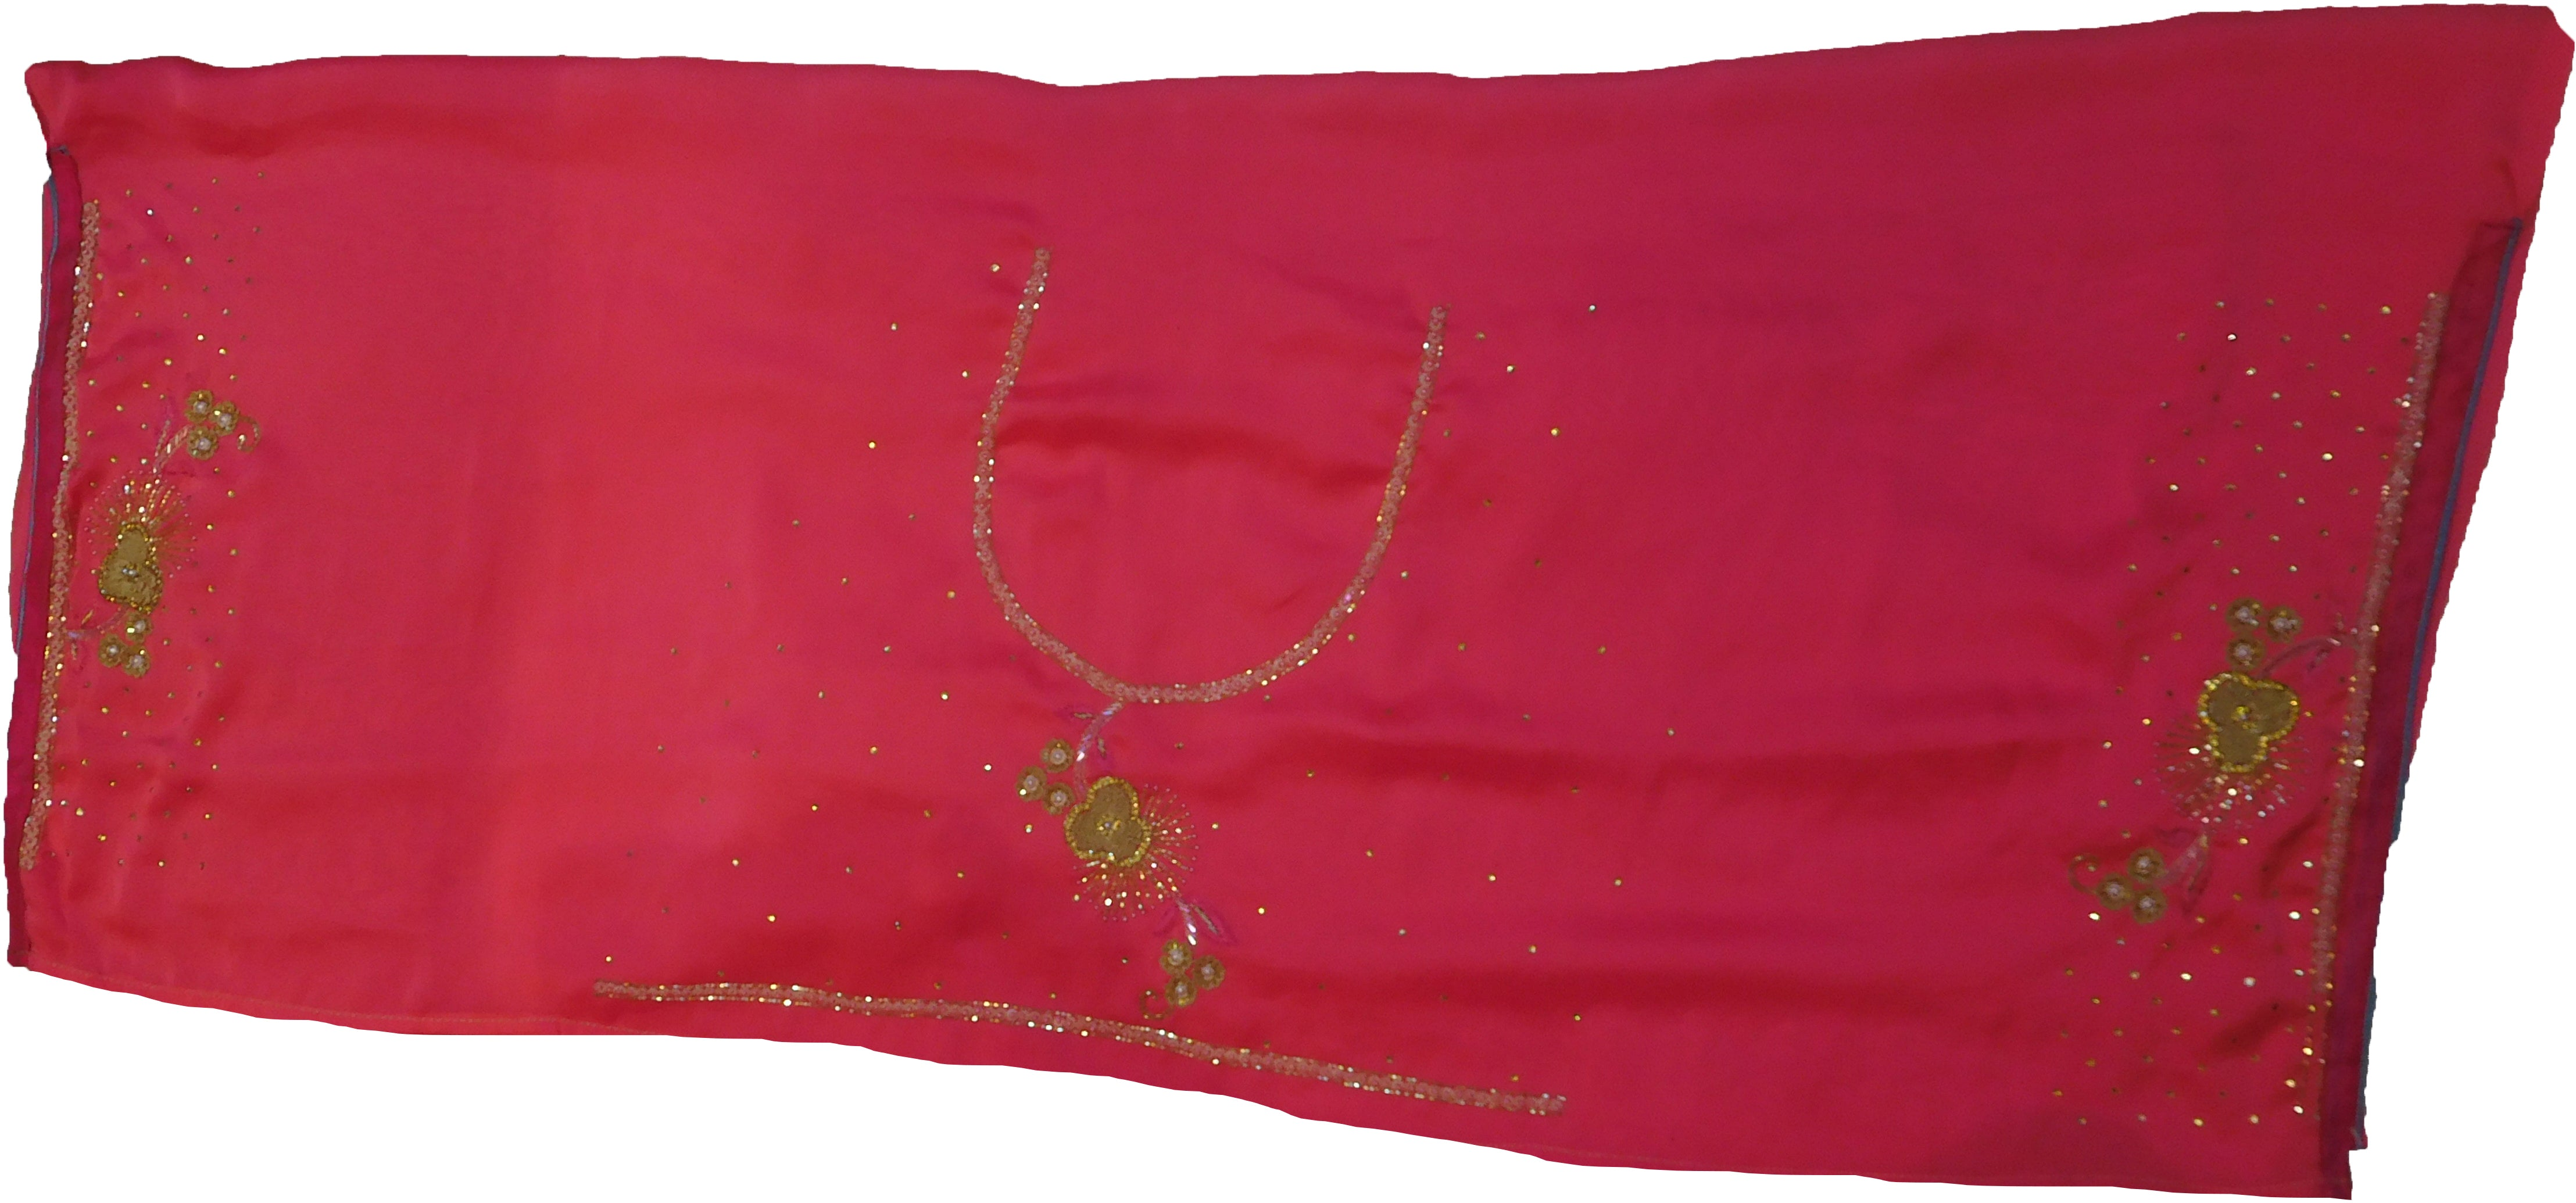 SMSAREE Pink Designer Wedding Partywear Crepe (Rangoli) Stone Beads Zari Sequence & Bullion Hand Embroidery Work Bridal Saree Sari With Blouse Piece F218